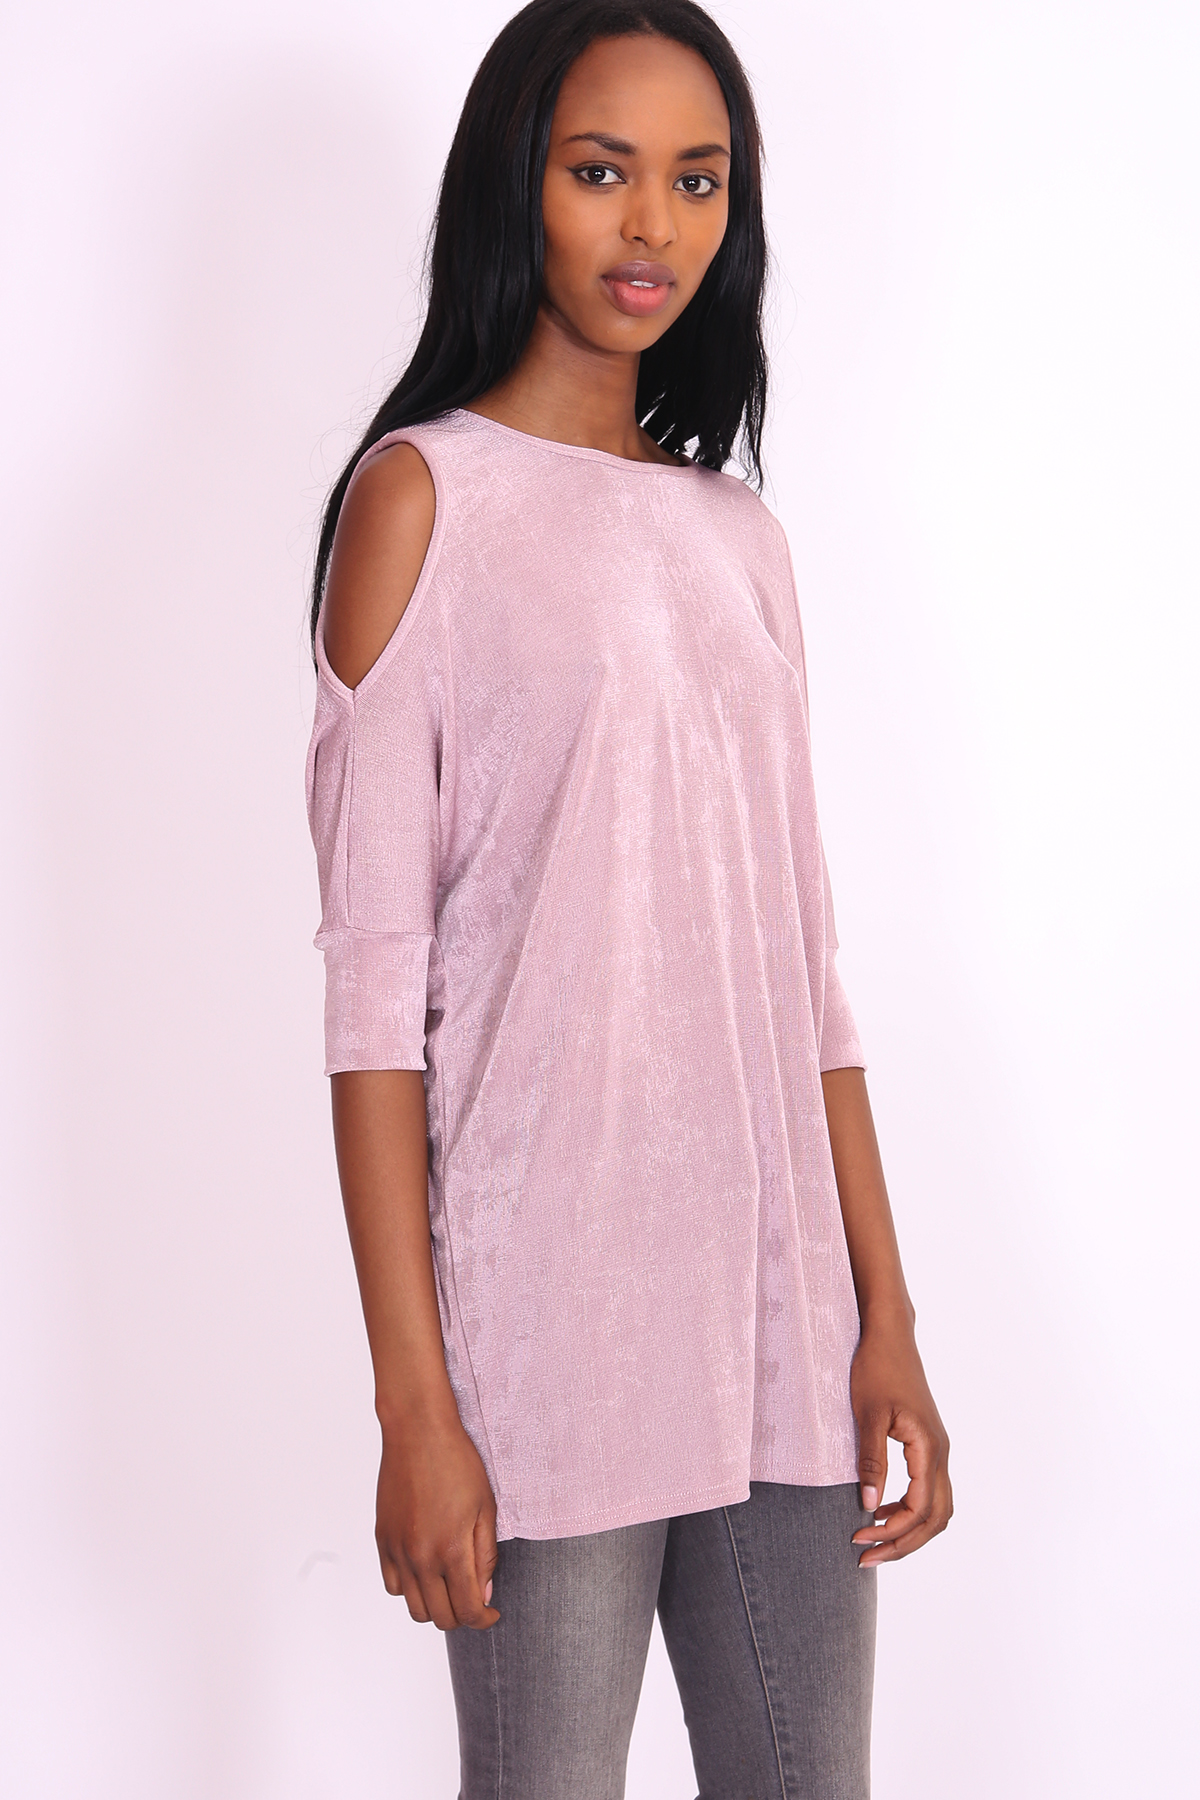 Oversized acetate cold shoulder tunic dress top for Celebrity t shirts wholesale